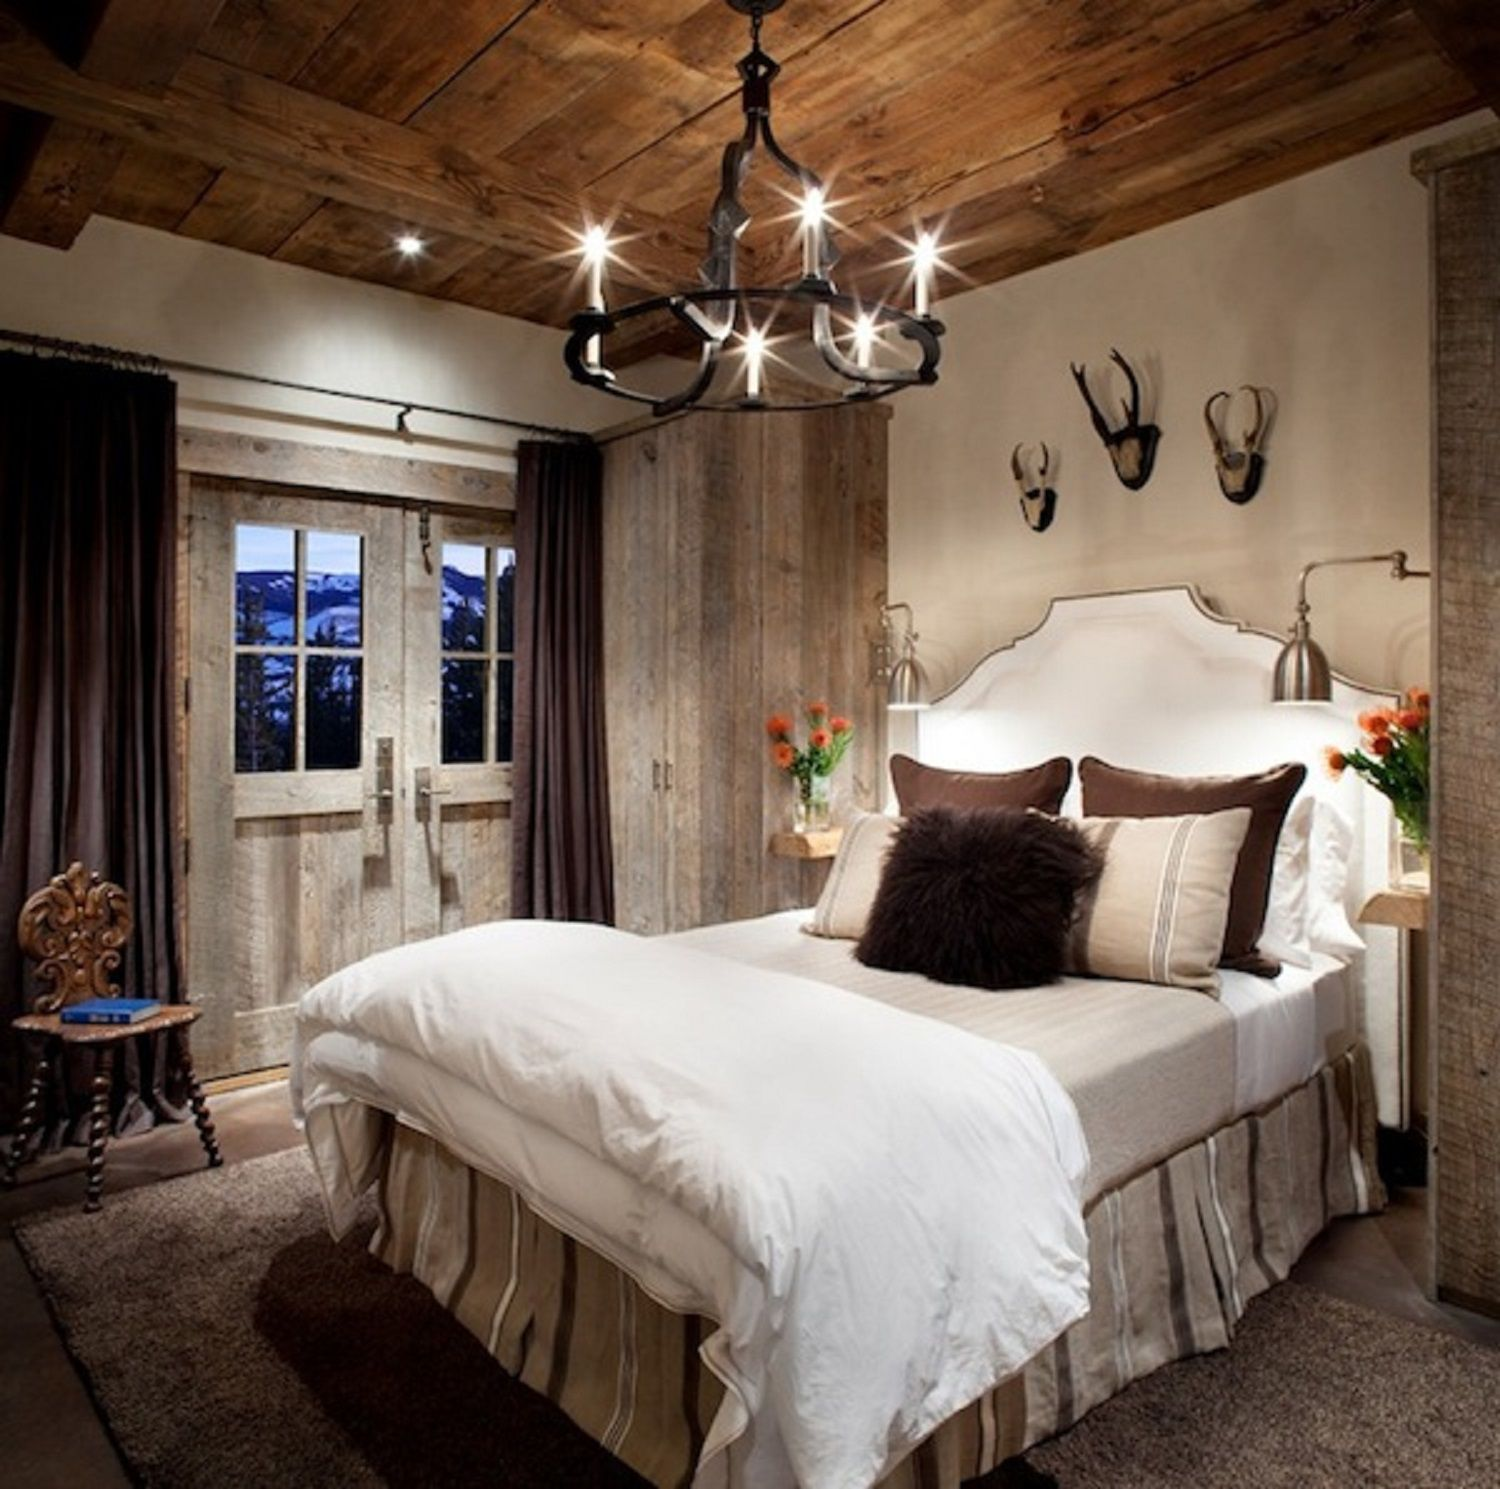 25 Small Master Bedroom Ideas Tips and s